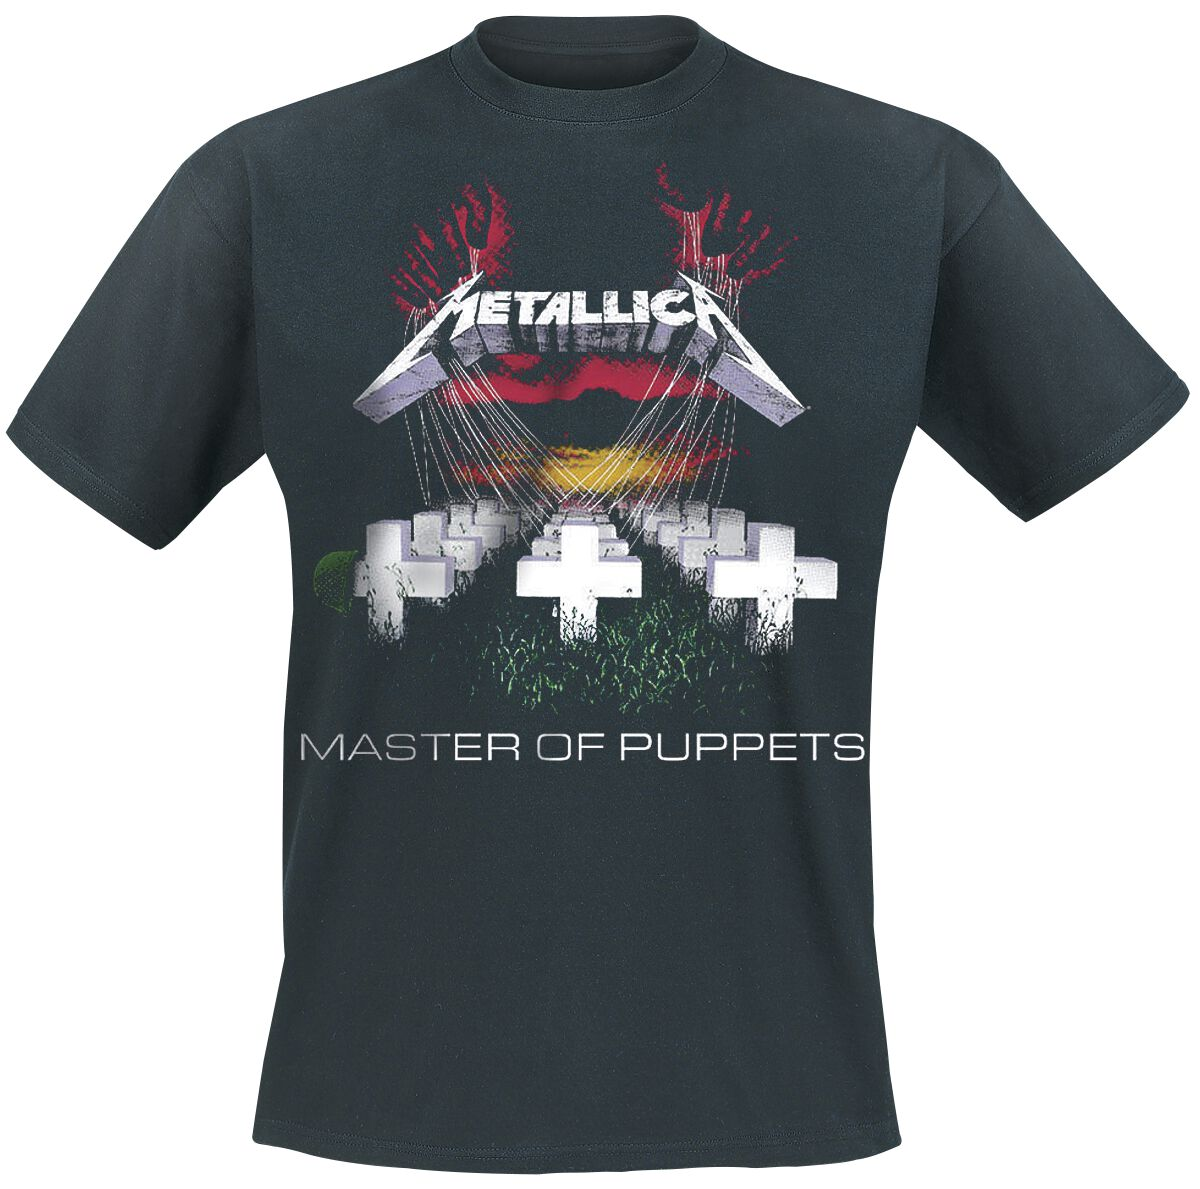 T-Shirt Black NEW /& OFFICIAL! Metallica /'Master Of Puppets Photo/'